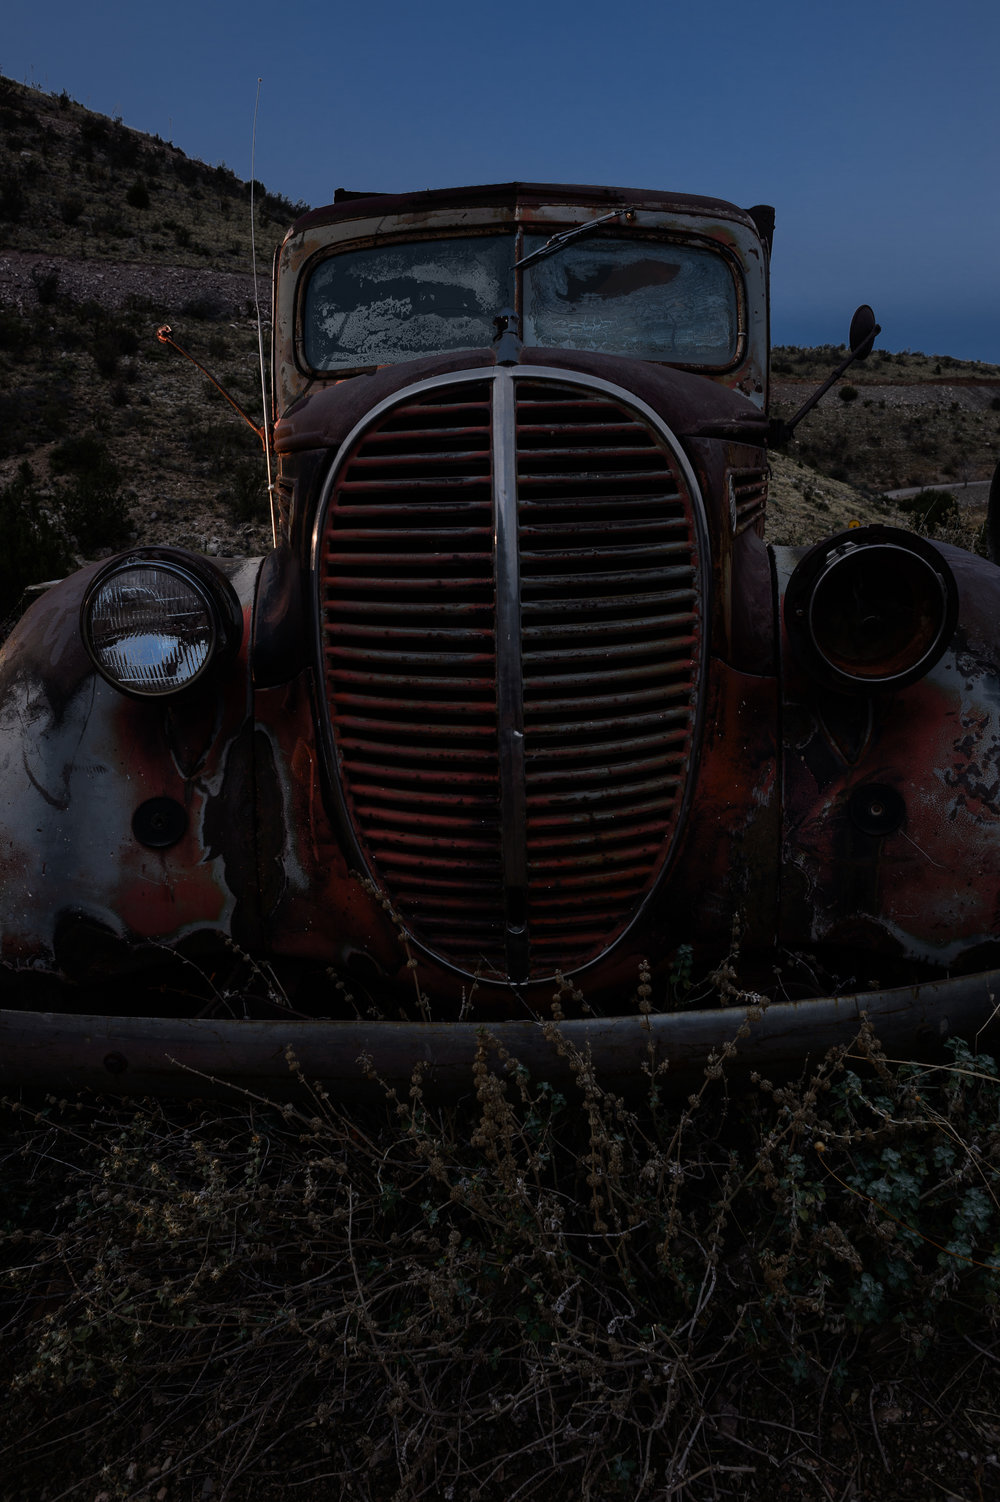 Figure 1. Jerome, Arizona. Base exposure of 1/125, f/11, ISO 100.